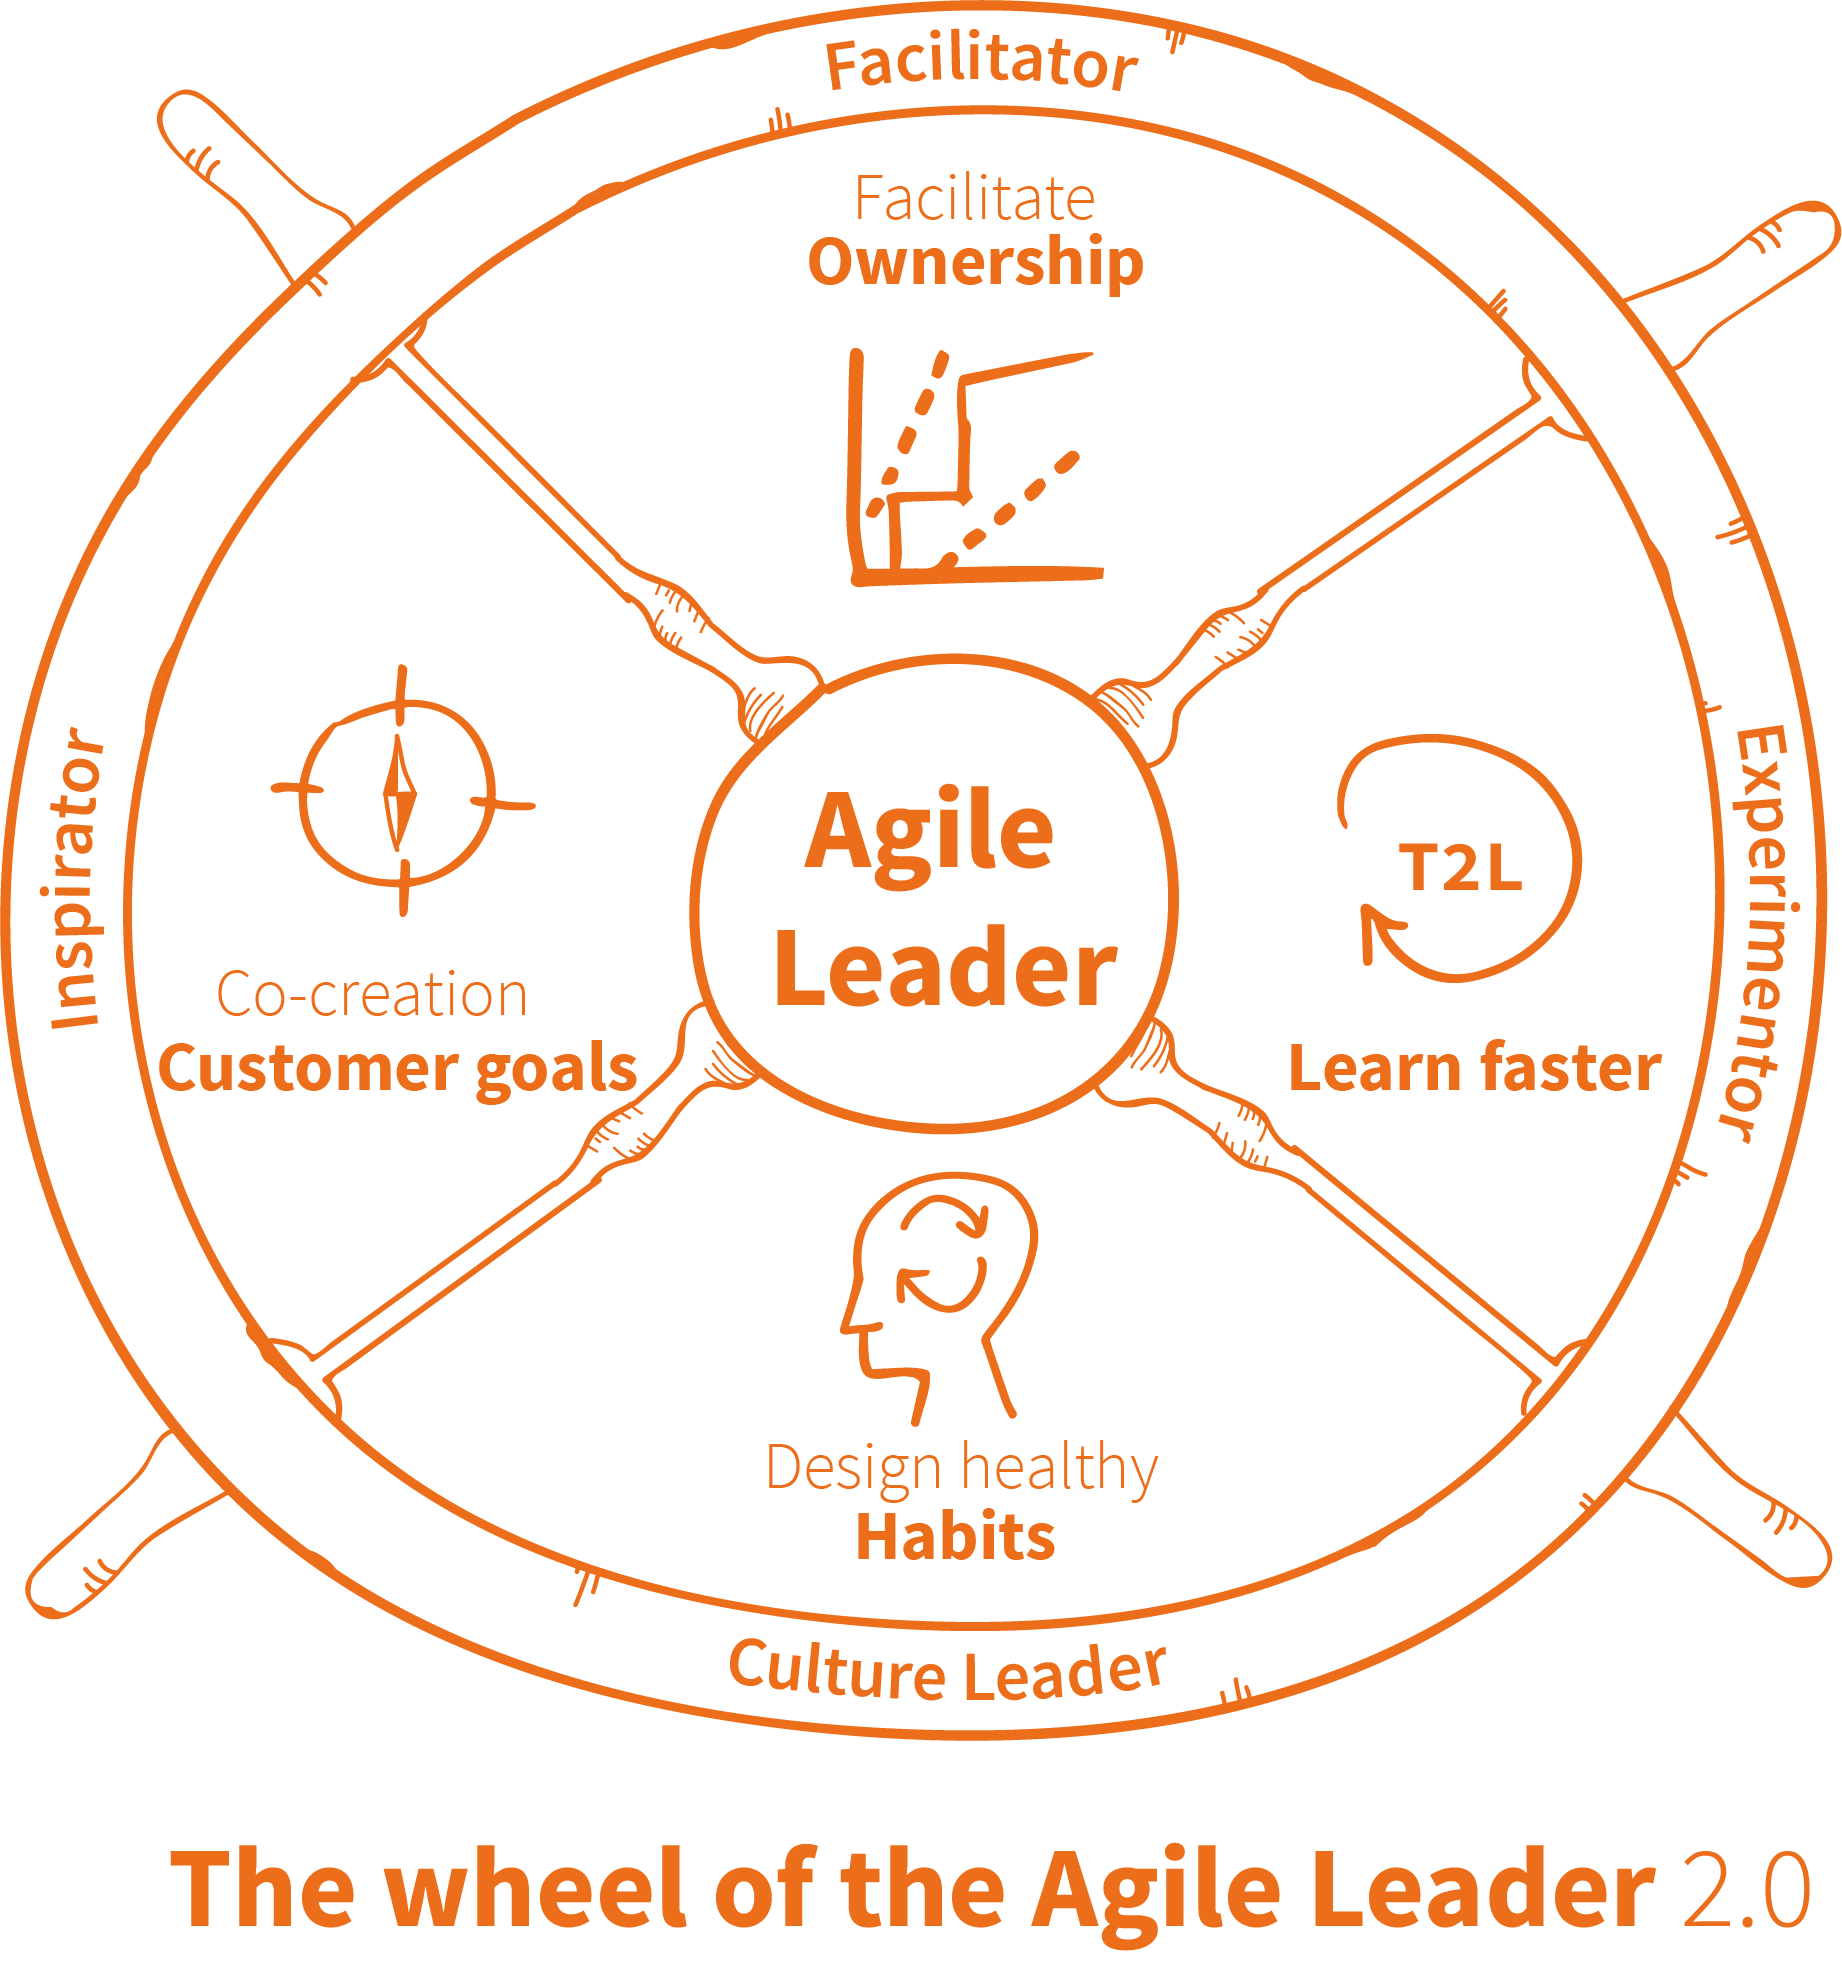 The wheel of the agile leader